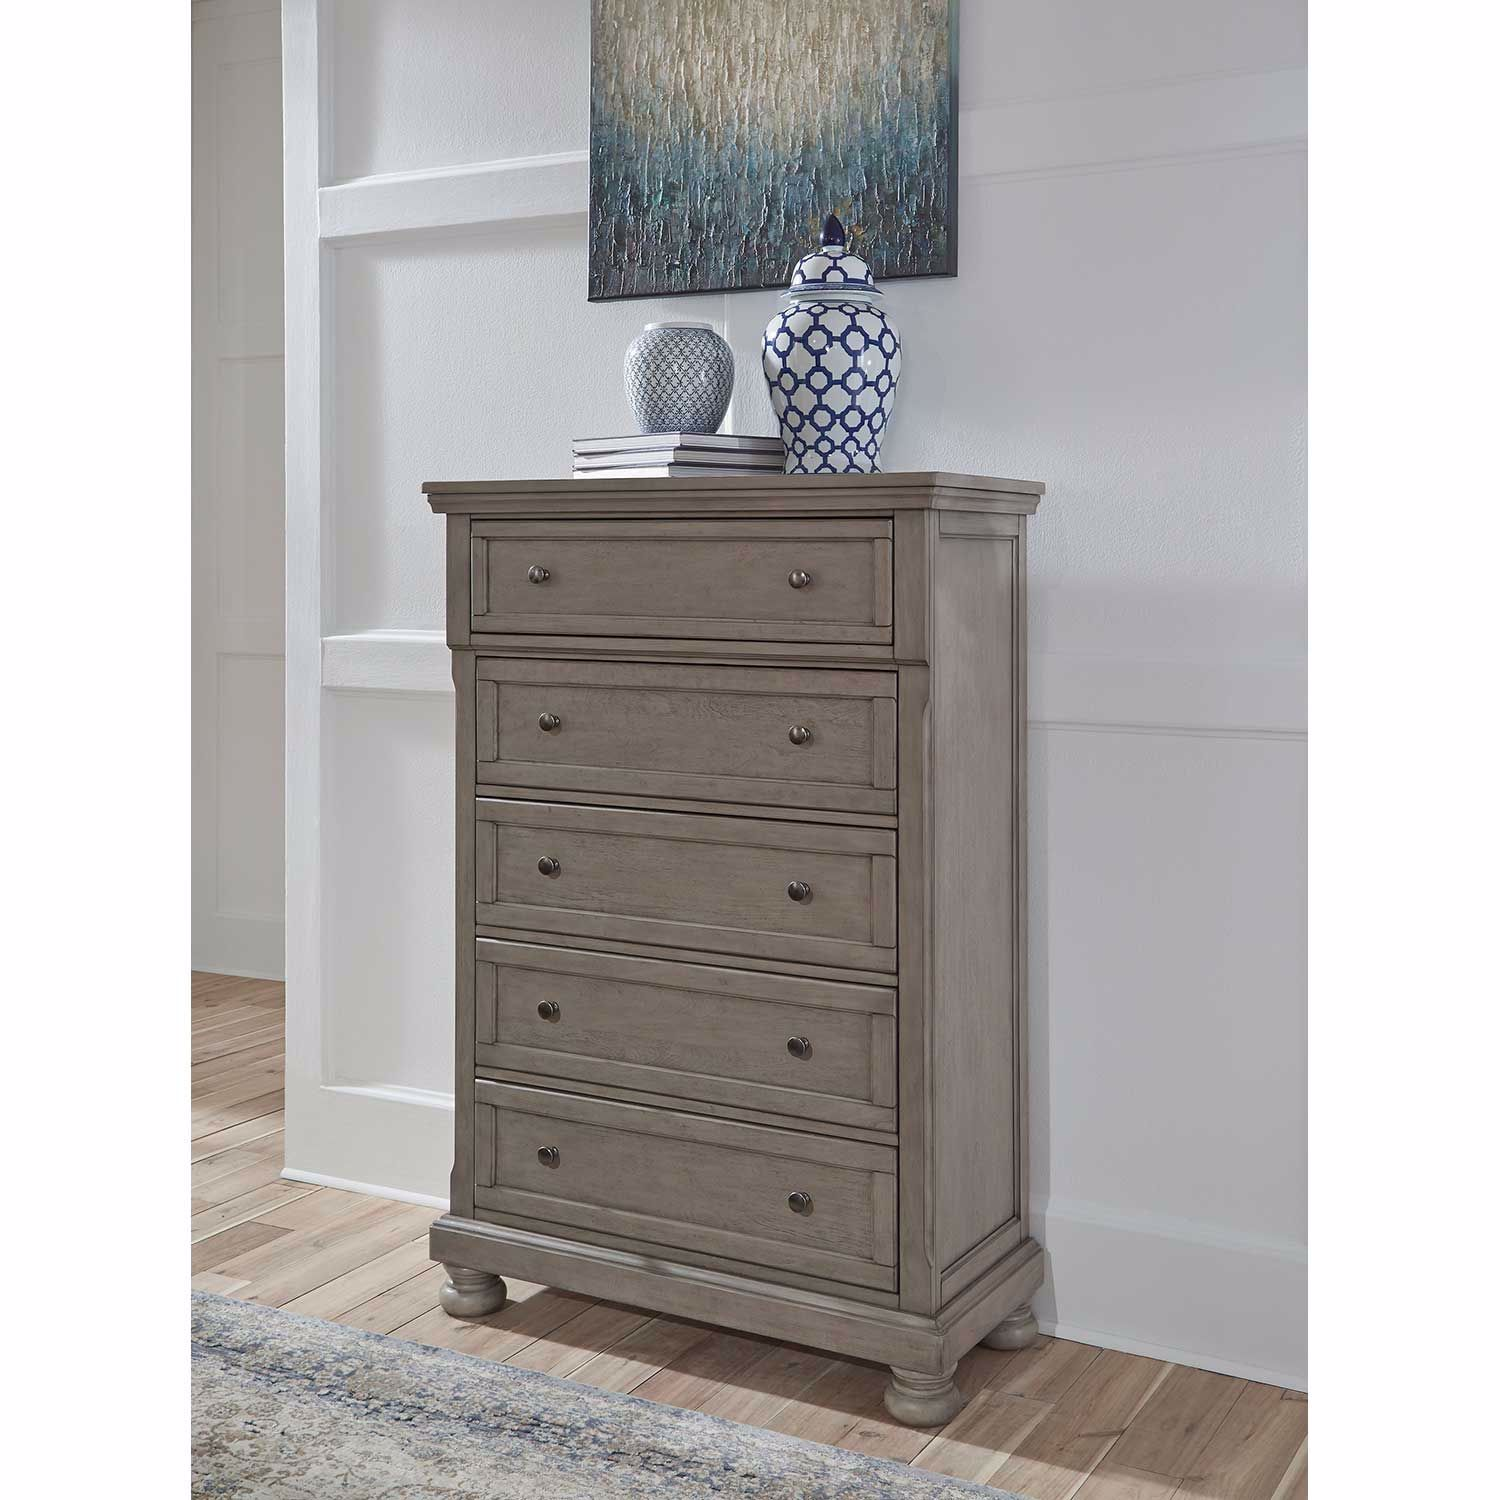 Picture of Lettner 5 Drawer Chest